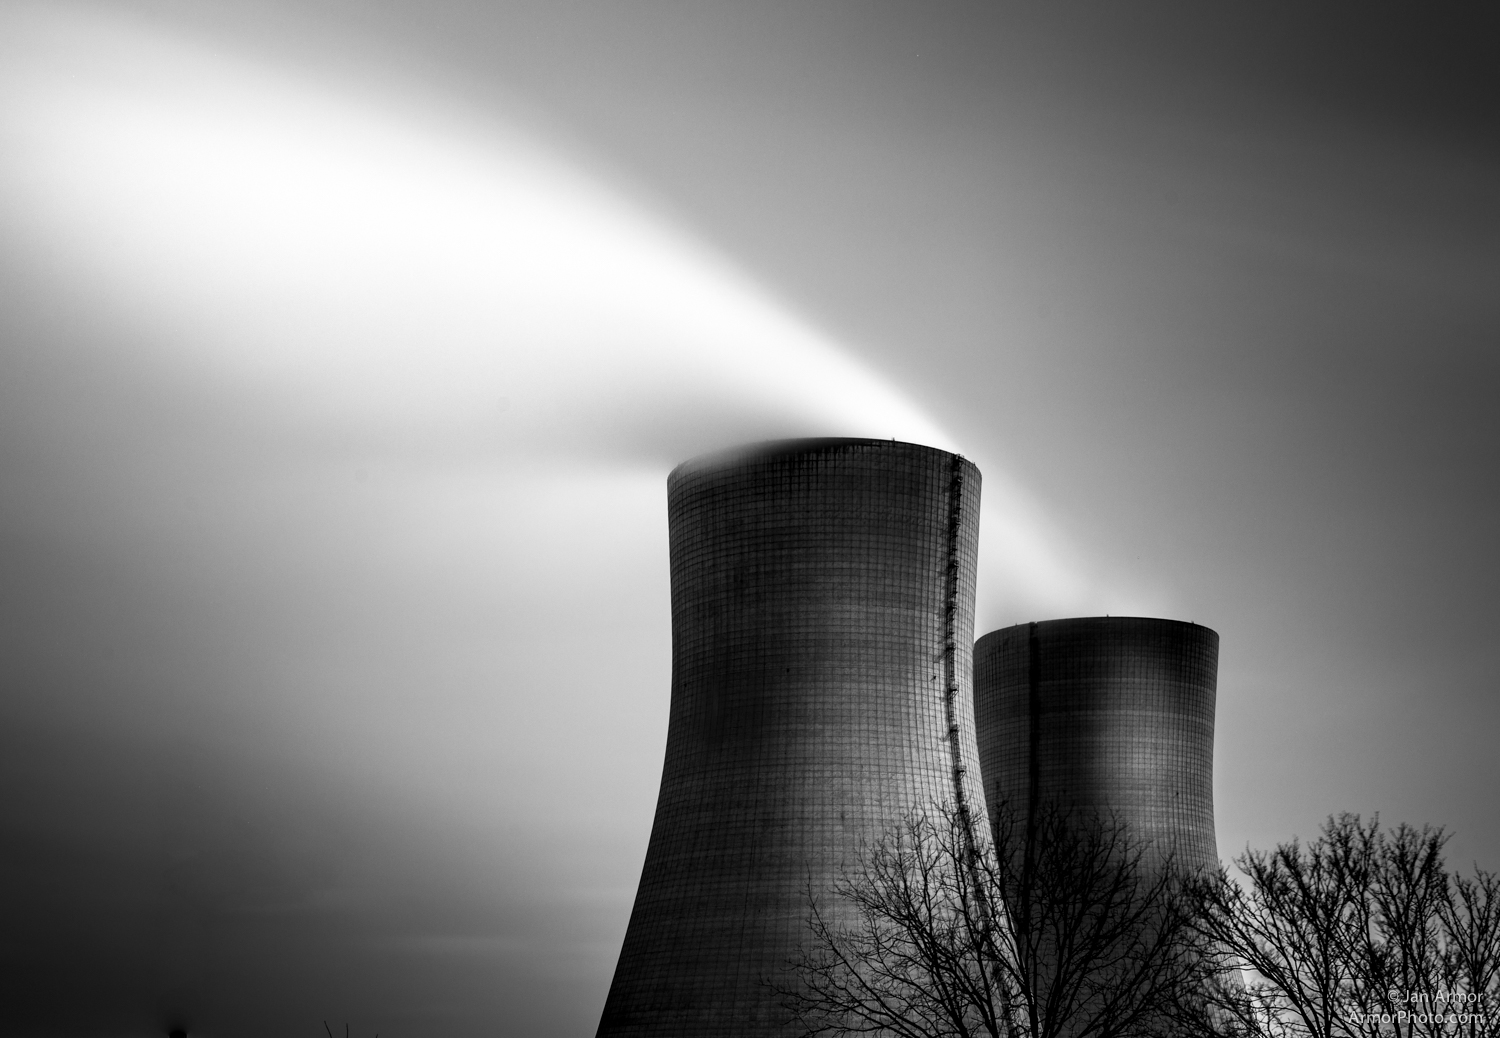 Cooling towers at the Brayton Power Plant, Thank you for this, Michael Kenna.